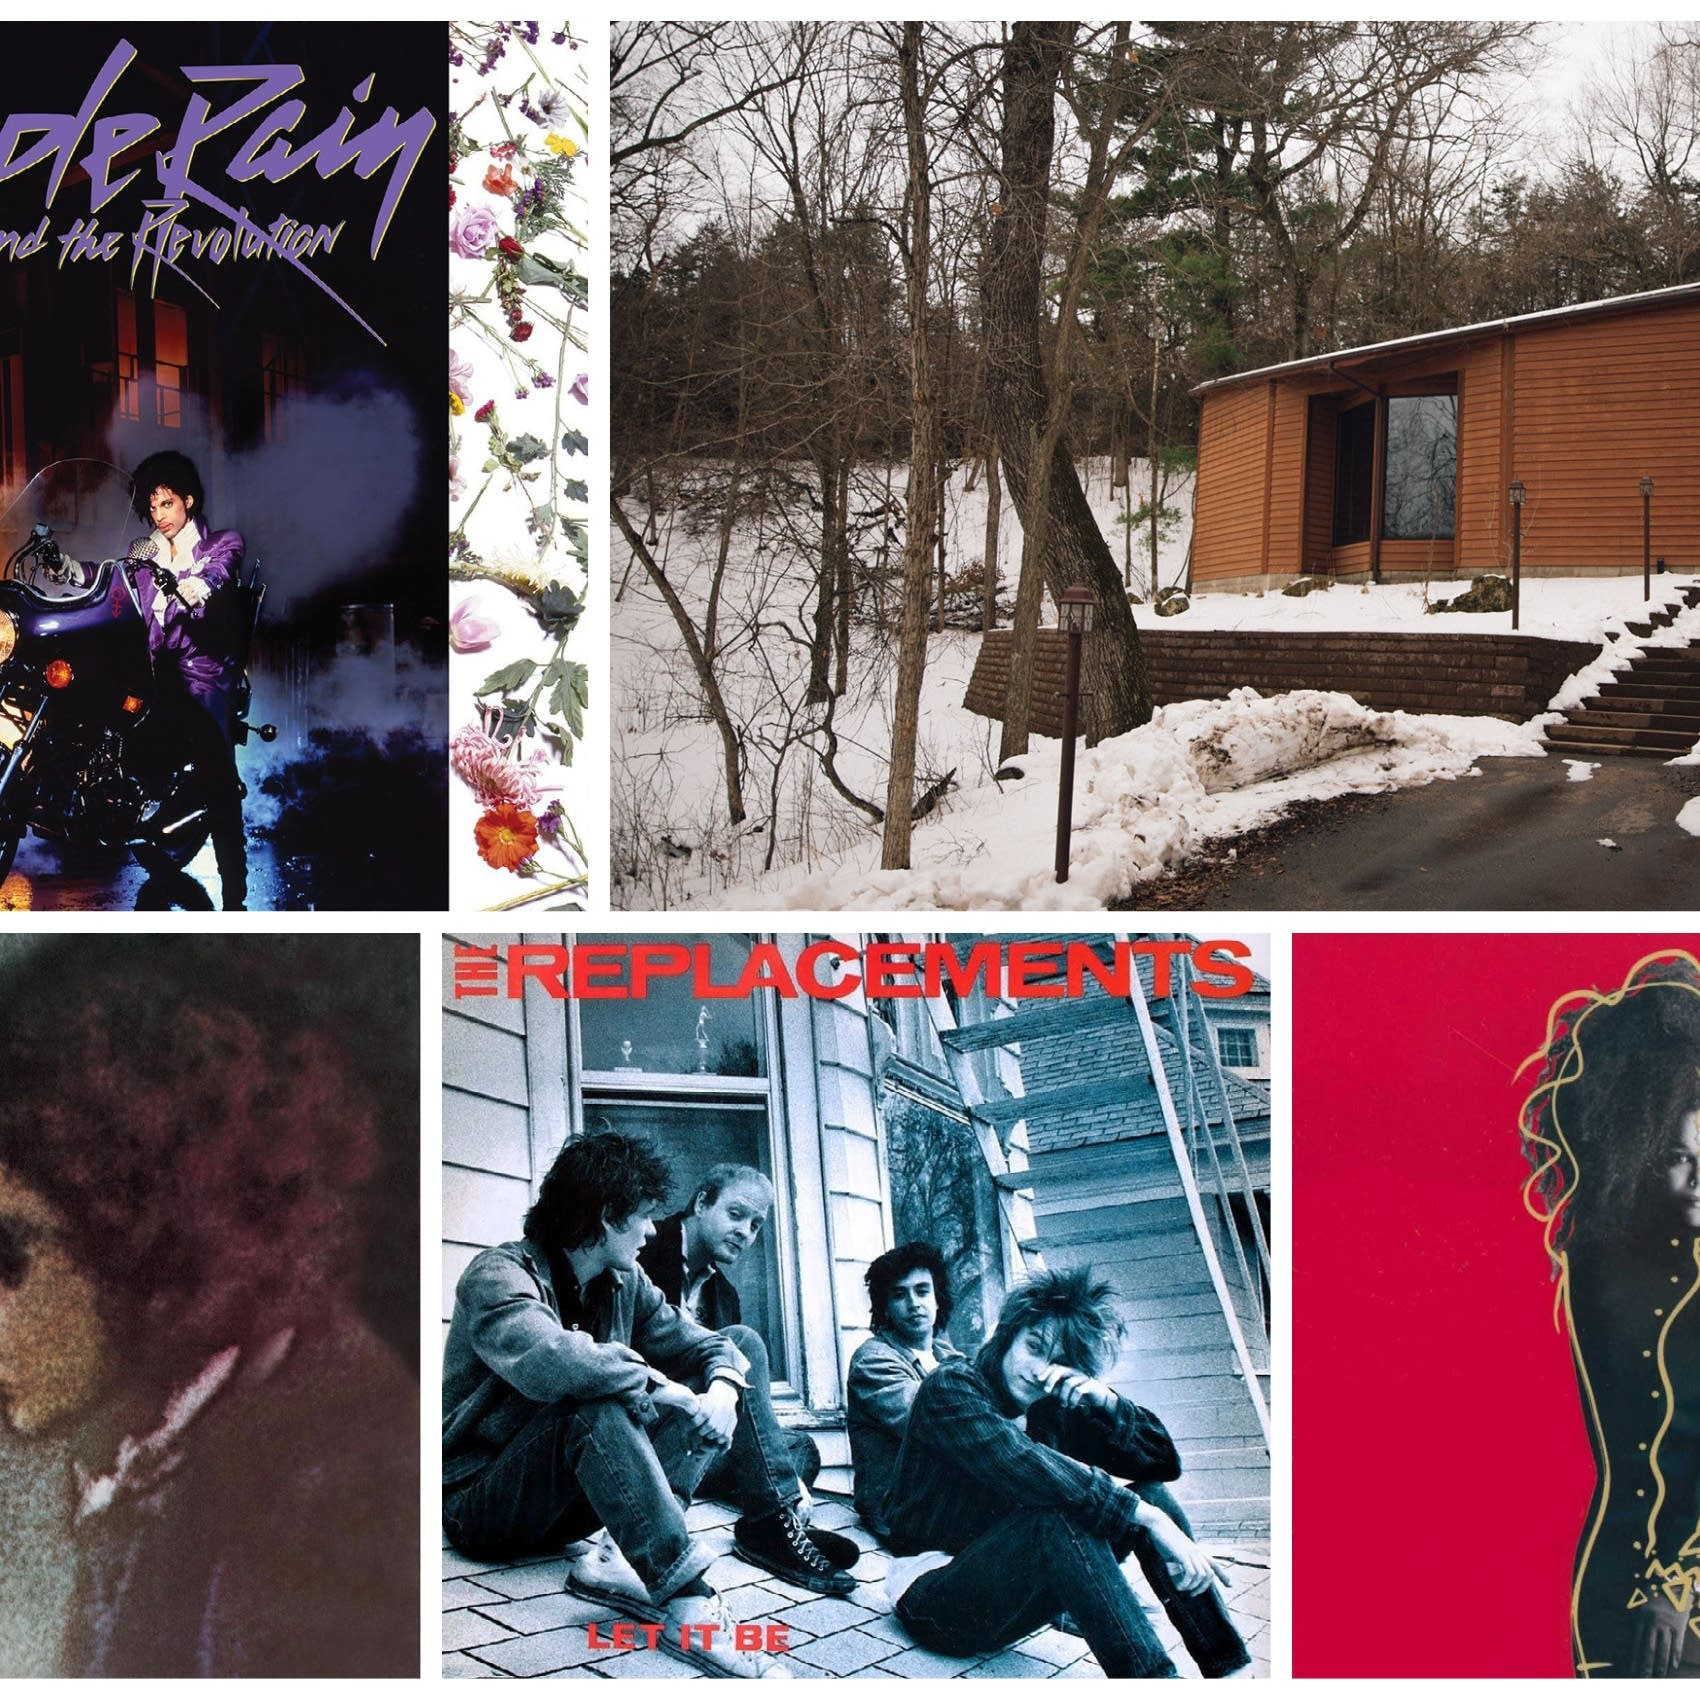 Minnesota albums and locations.